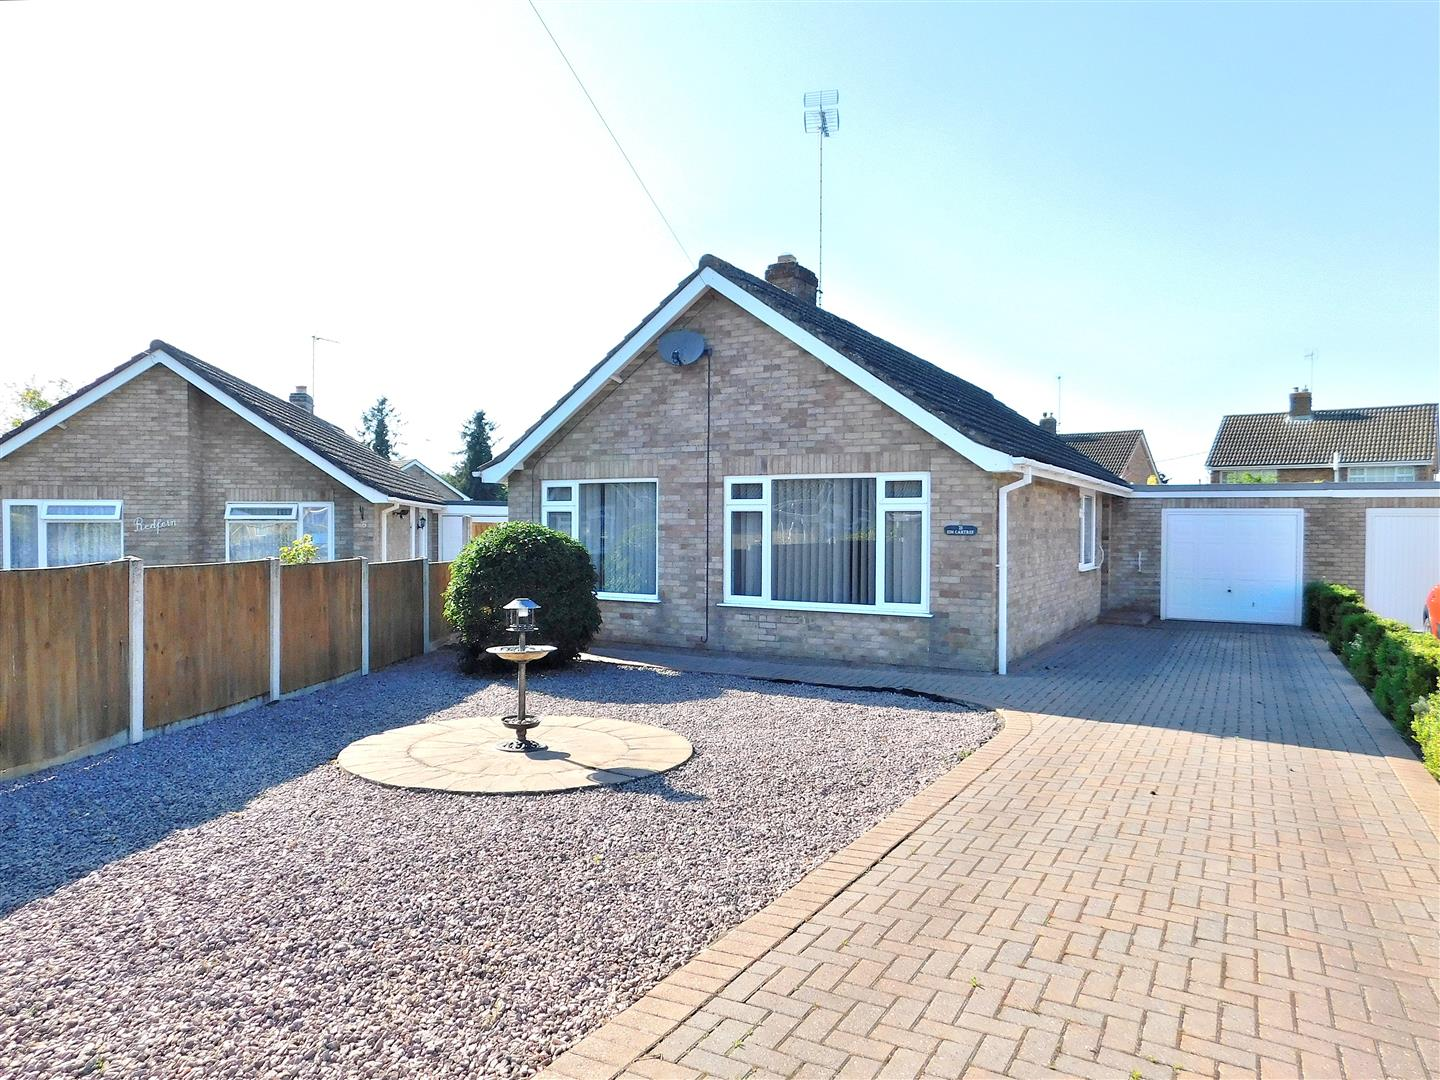 3 bed detached bungalow for sale in King's Lynn, PE30 3LZ 0